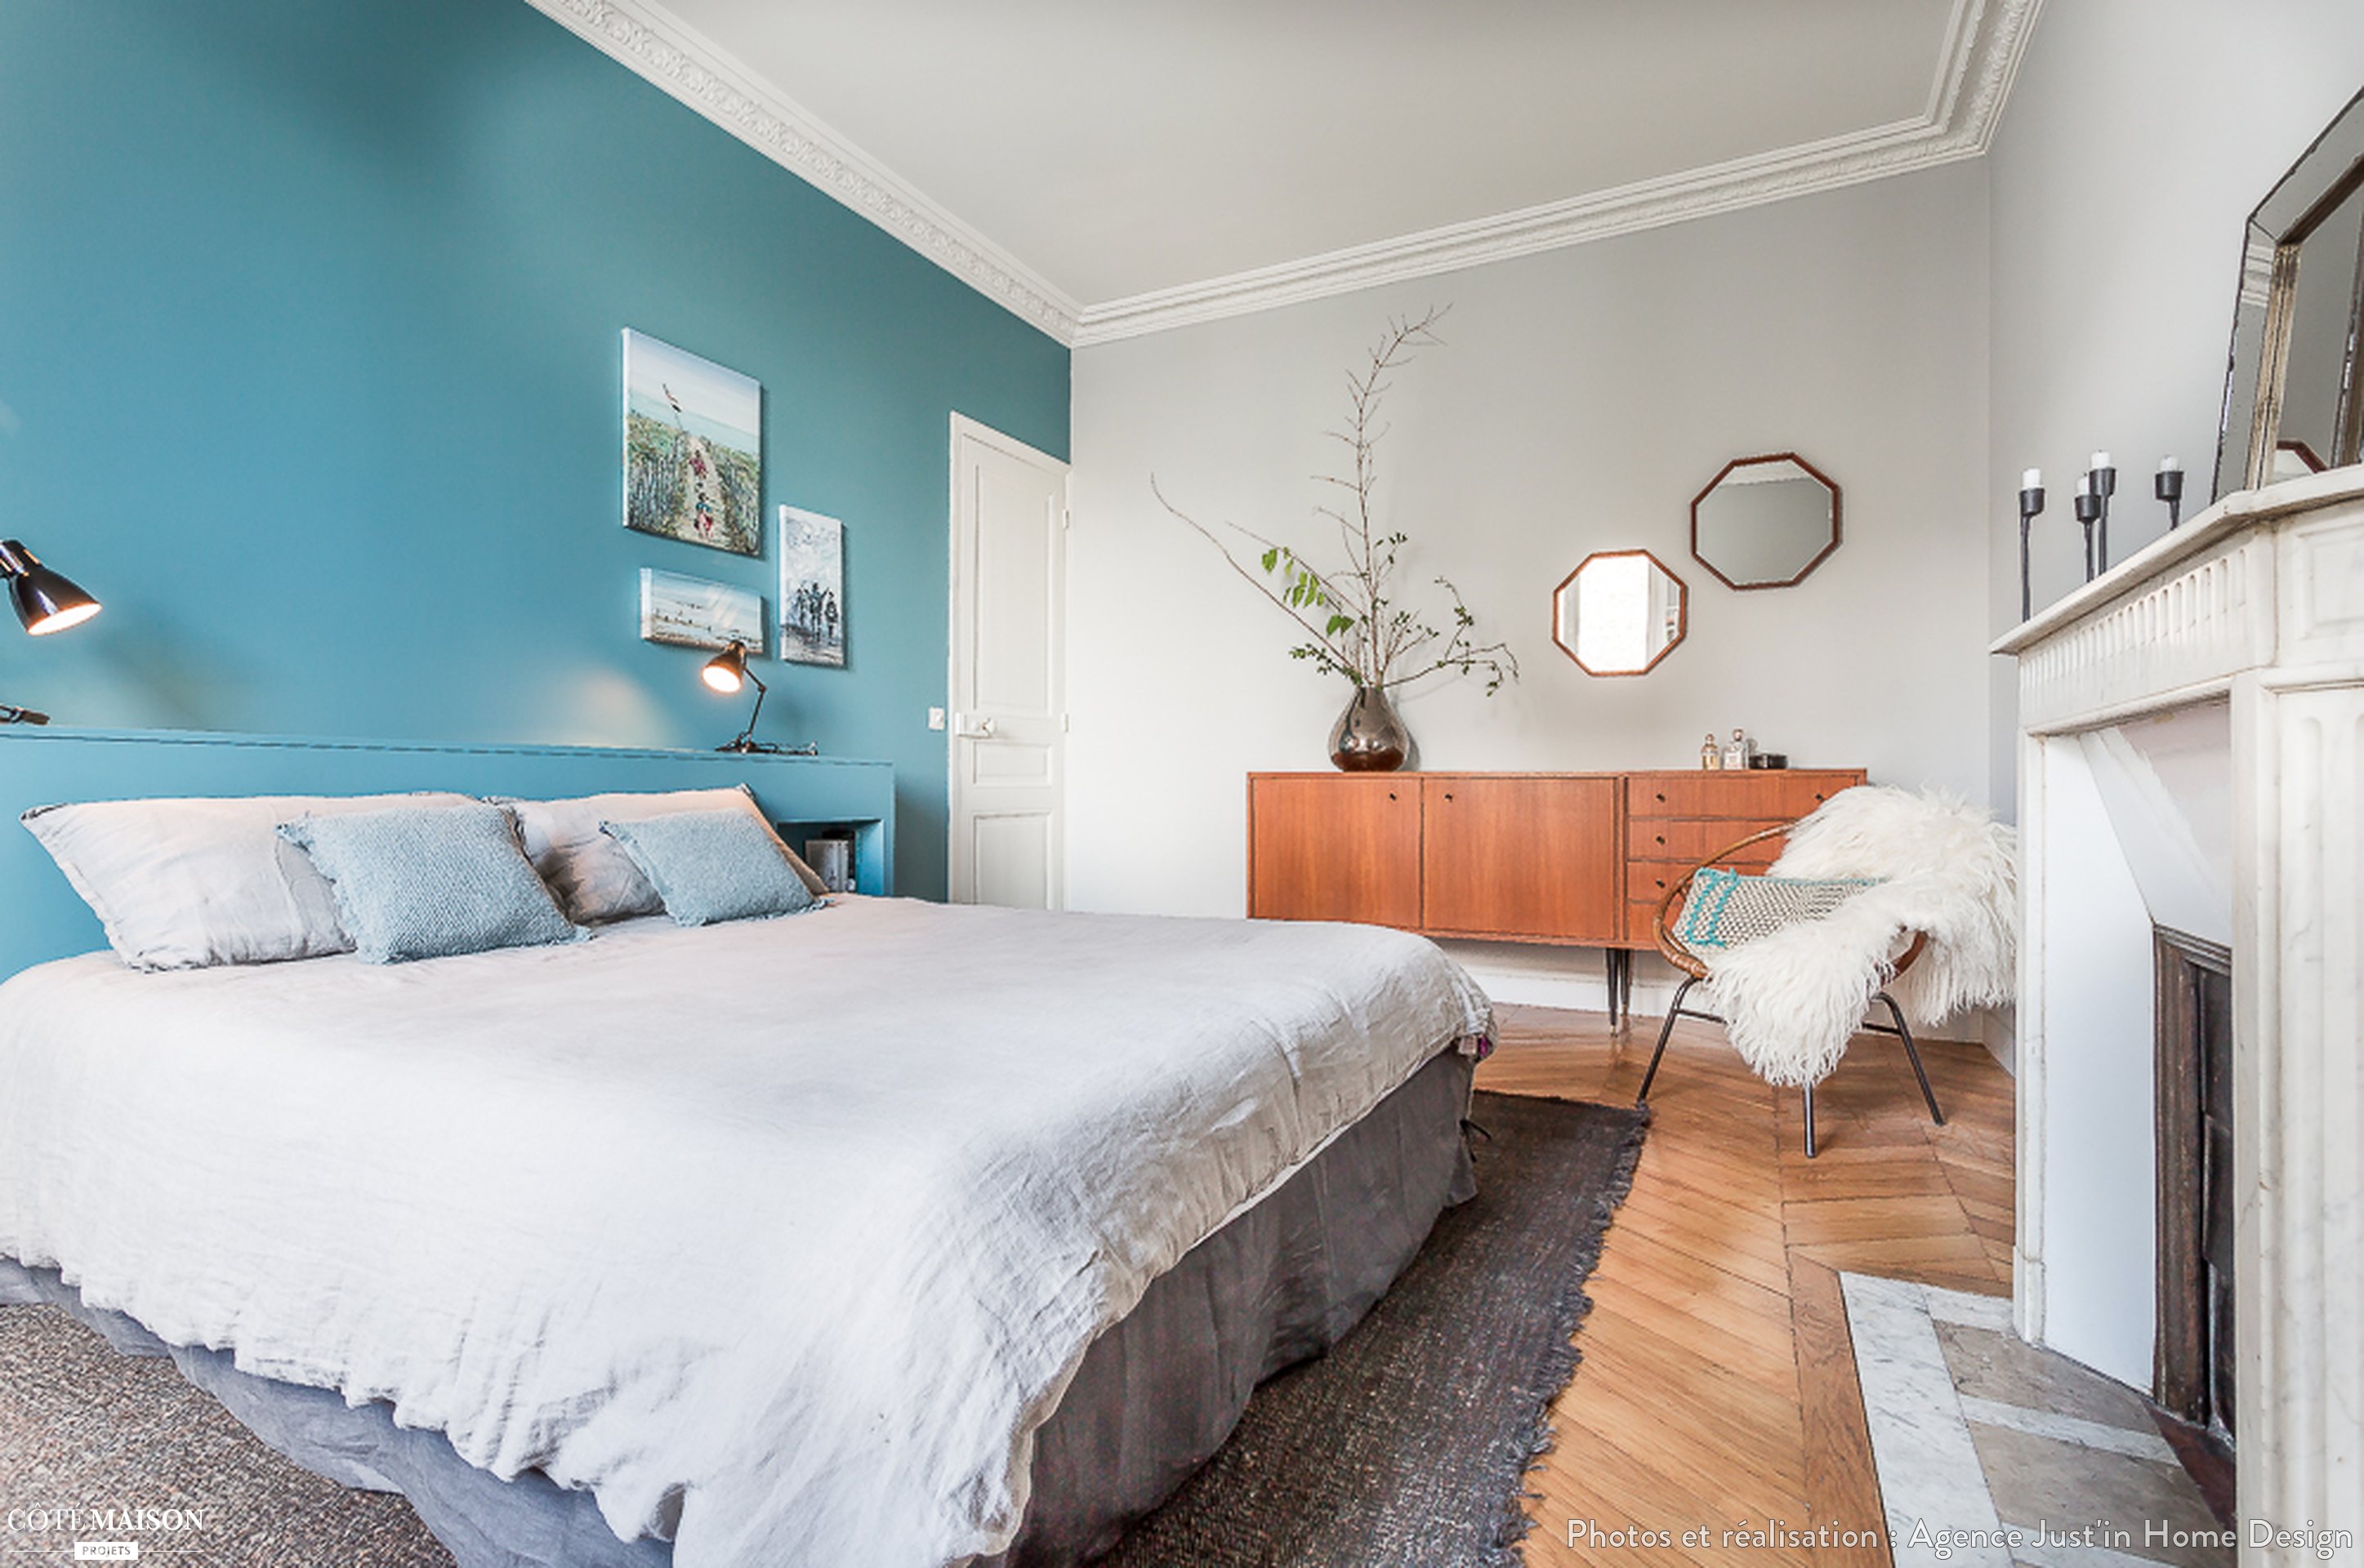 Rénovation pl¨te et décoration d un appartement de 200m2   Paris